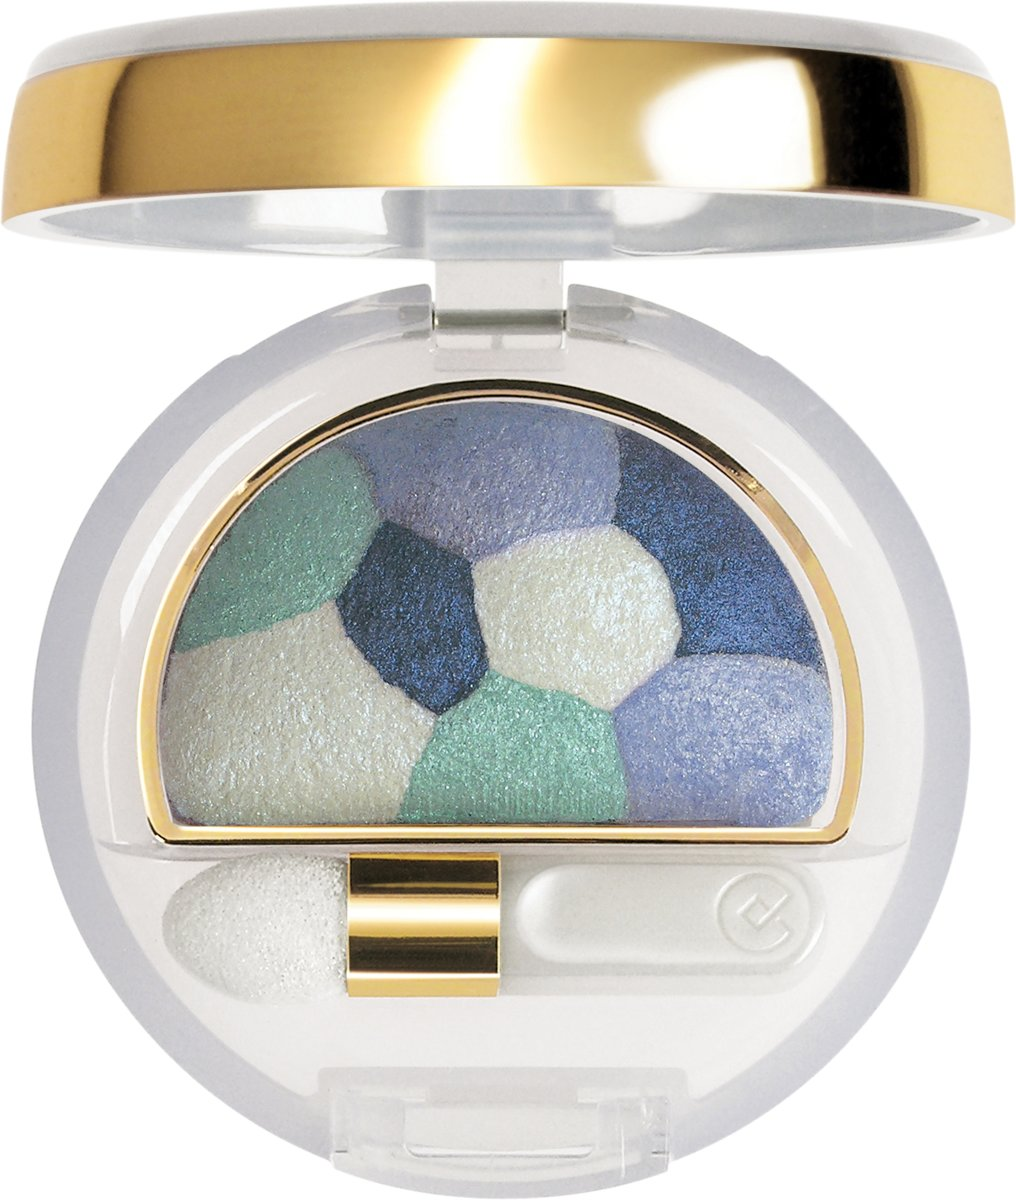 Collistar Double Effect Wet & Dry Eyeshadow - 17 Patchwork Celeste - Oogschaduw